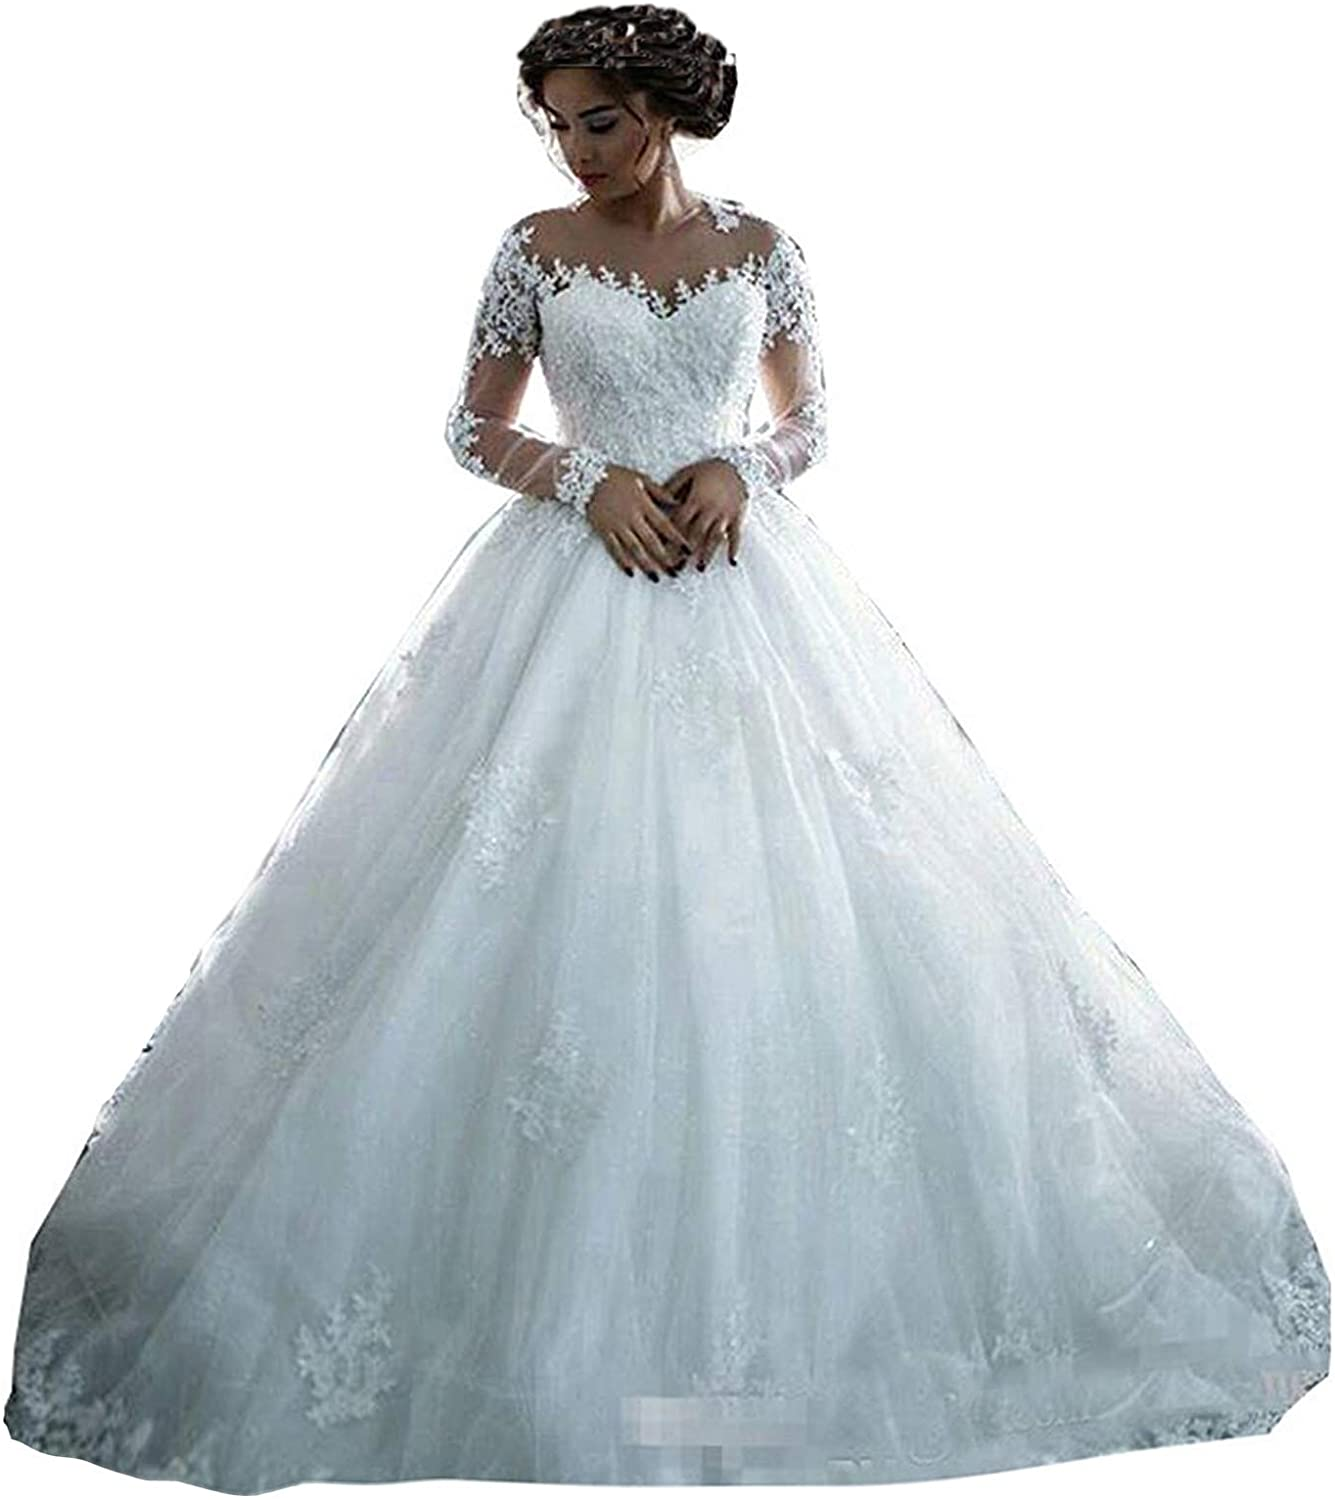 Amazon Com Fanciest Women S Lace Wedding Dresses Long Sleeve Wedding Dress Ball Bridal Gowns White Clothing